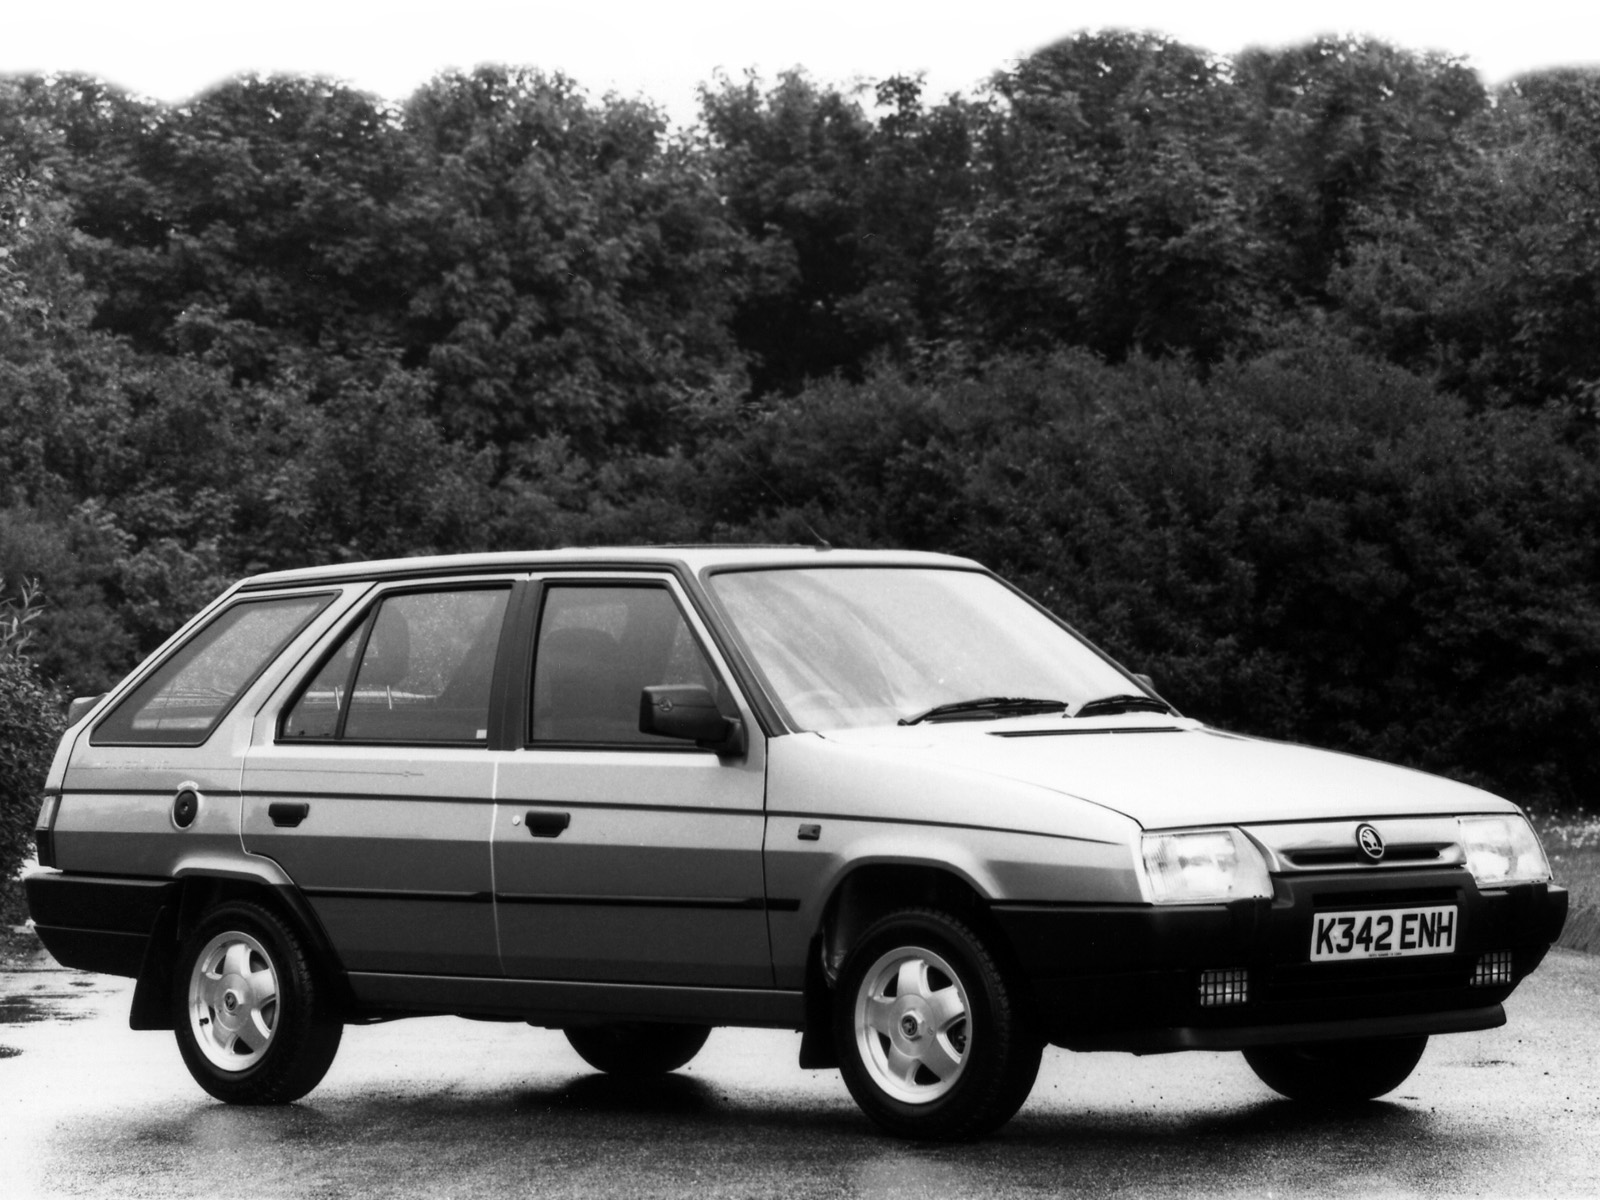 Cars skoda favorit forman (785) 1993